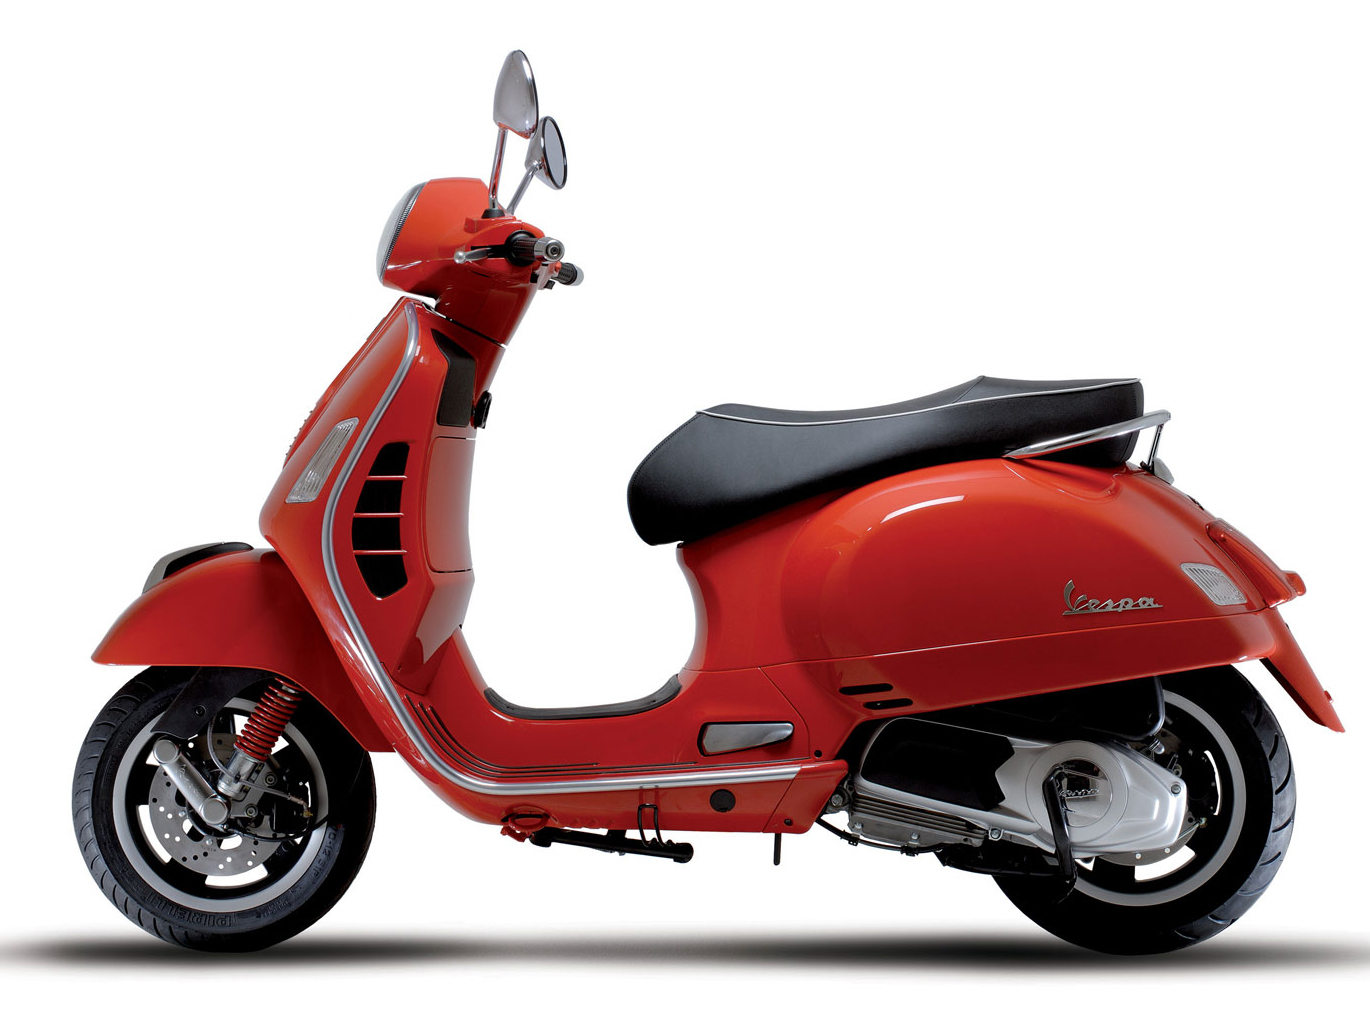 vespa gts 125 i e motocykle 125 opinie ceny porady. Black Bedroom Furniture Sets. Home Design Ideas